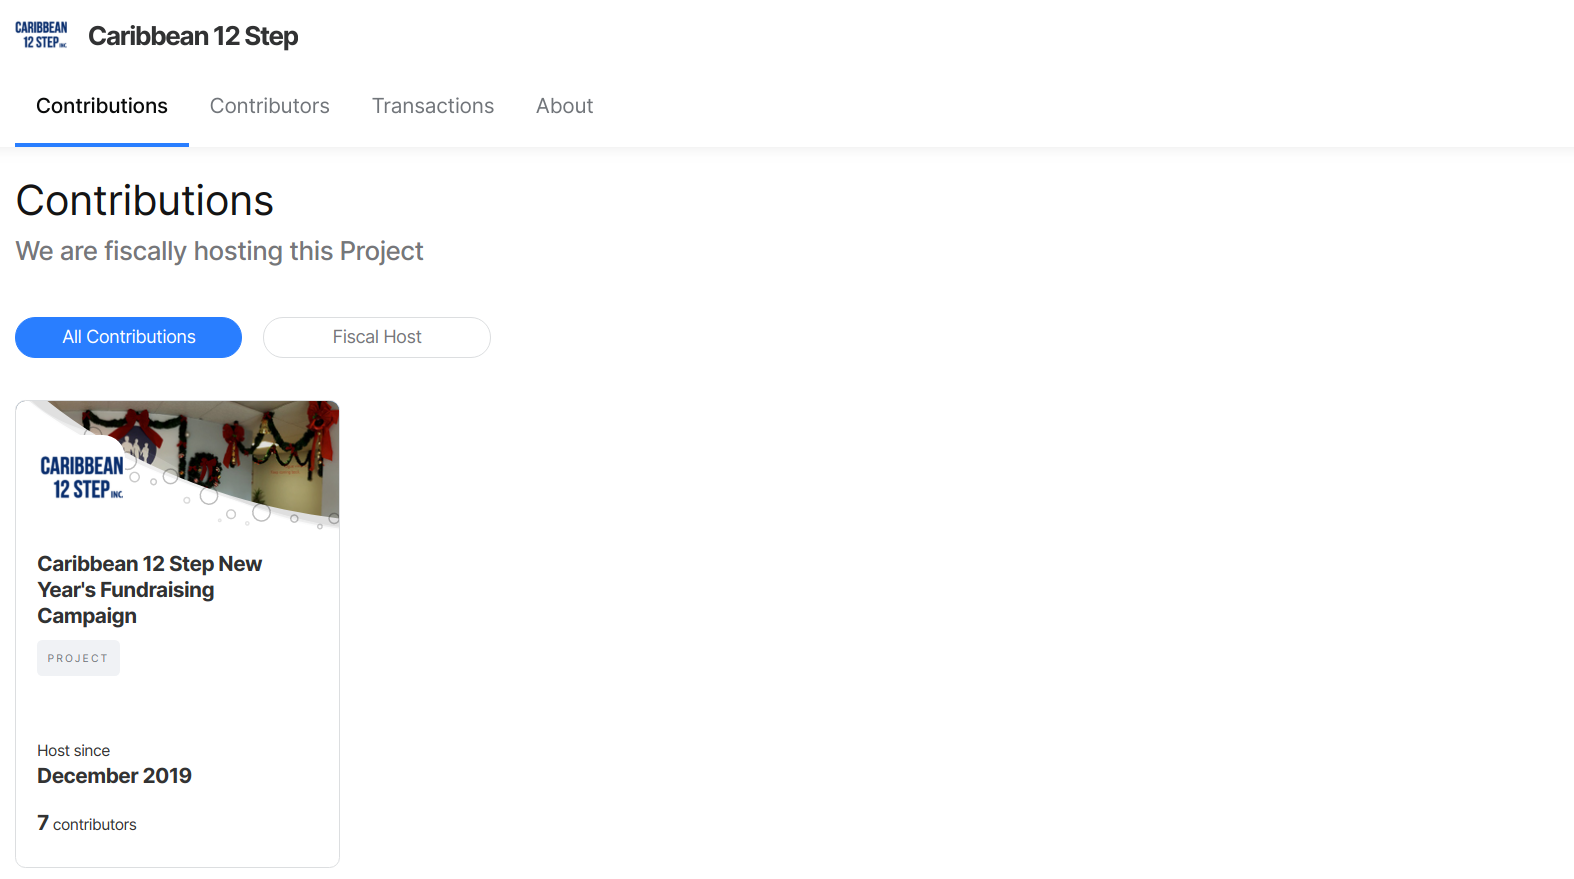 Projects page screenshot